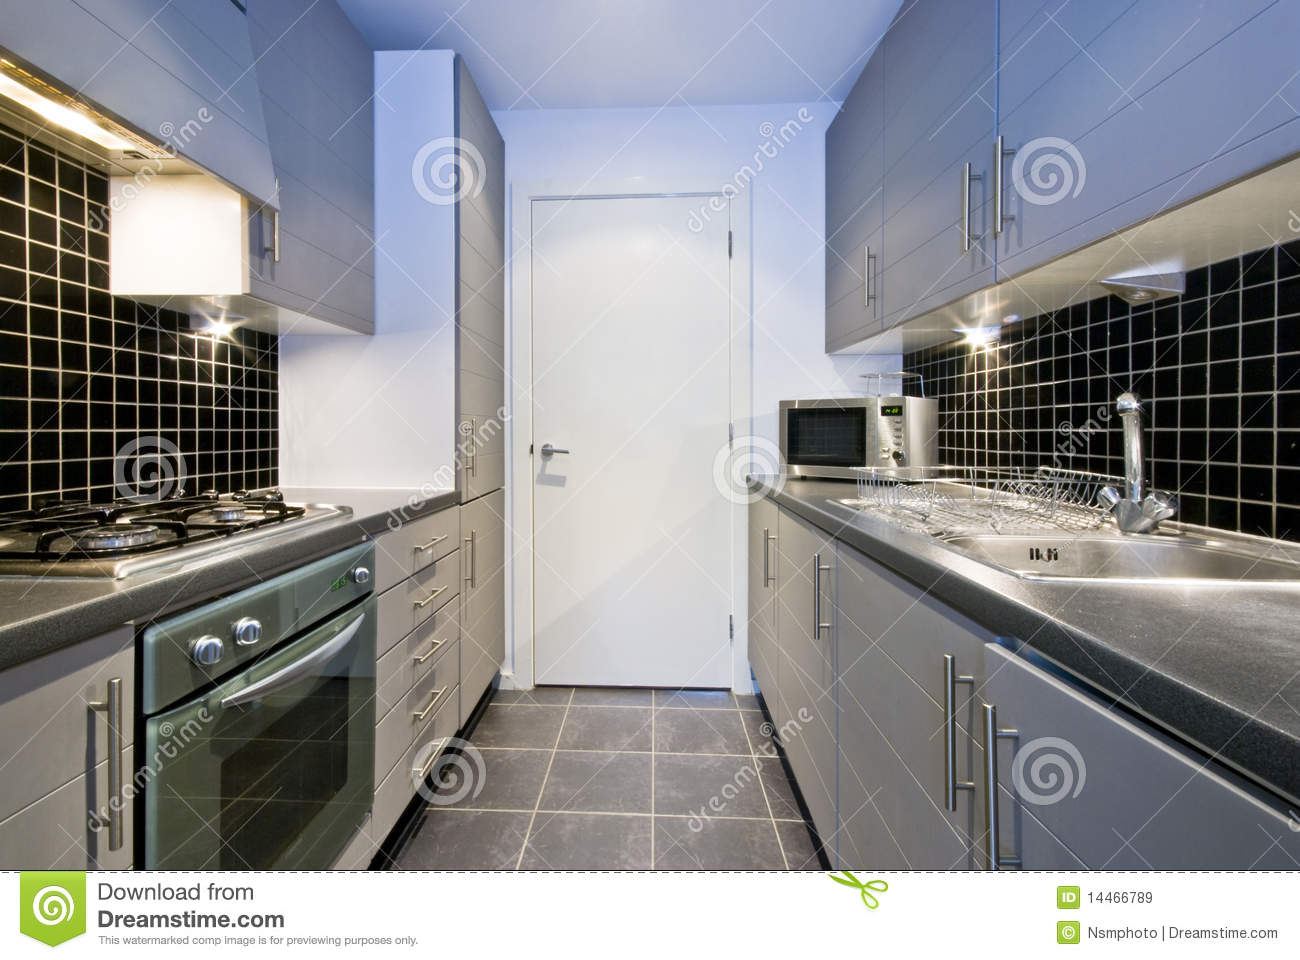 Modern Silver Kitchen With Black Tiles Stock Image  Image